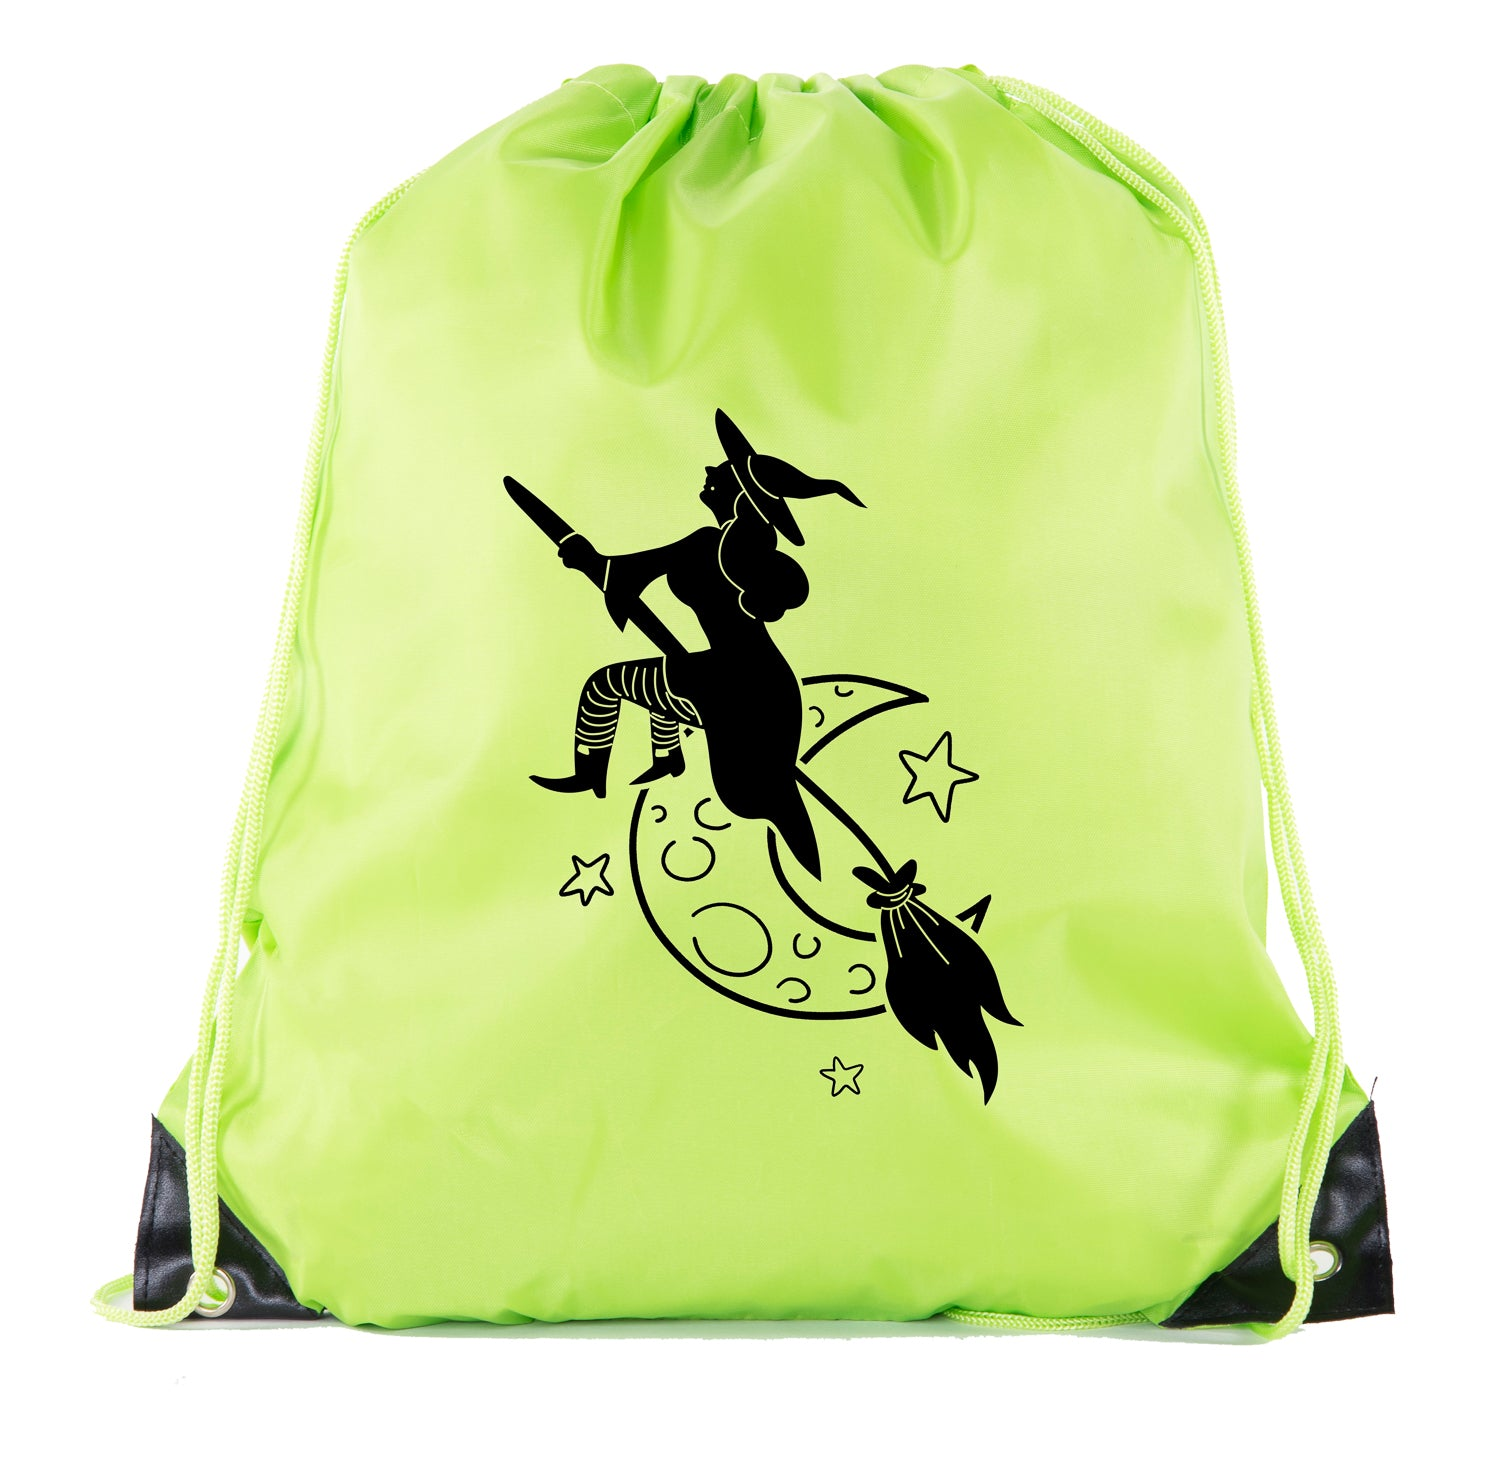 Accessory - Witch Halloween Bags, Halloween Trick Or Treat Bag, Funny Halloween Cinch Bags!